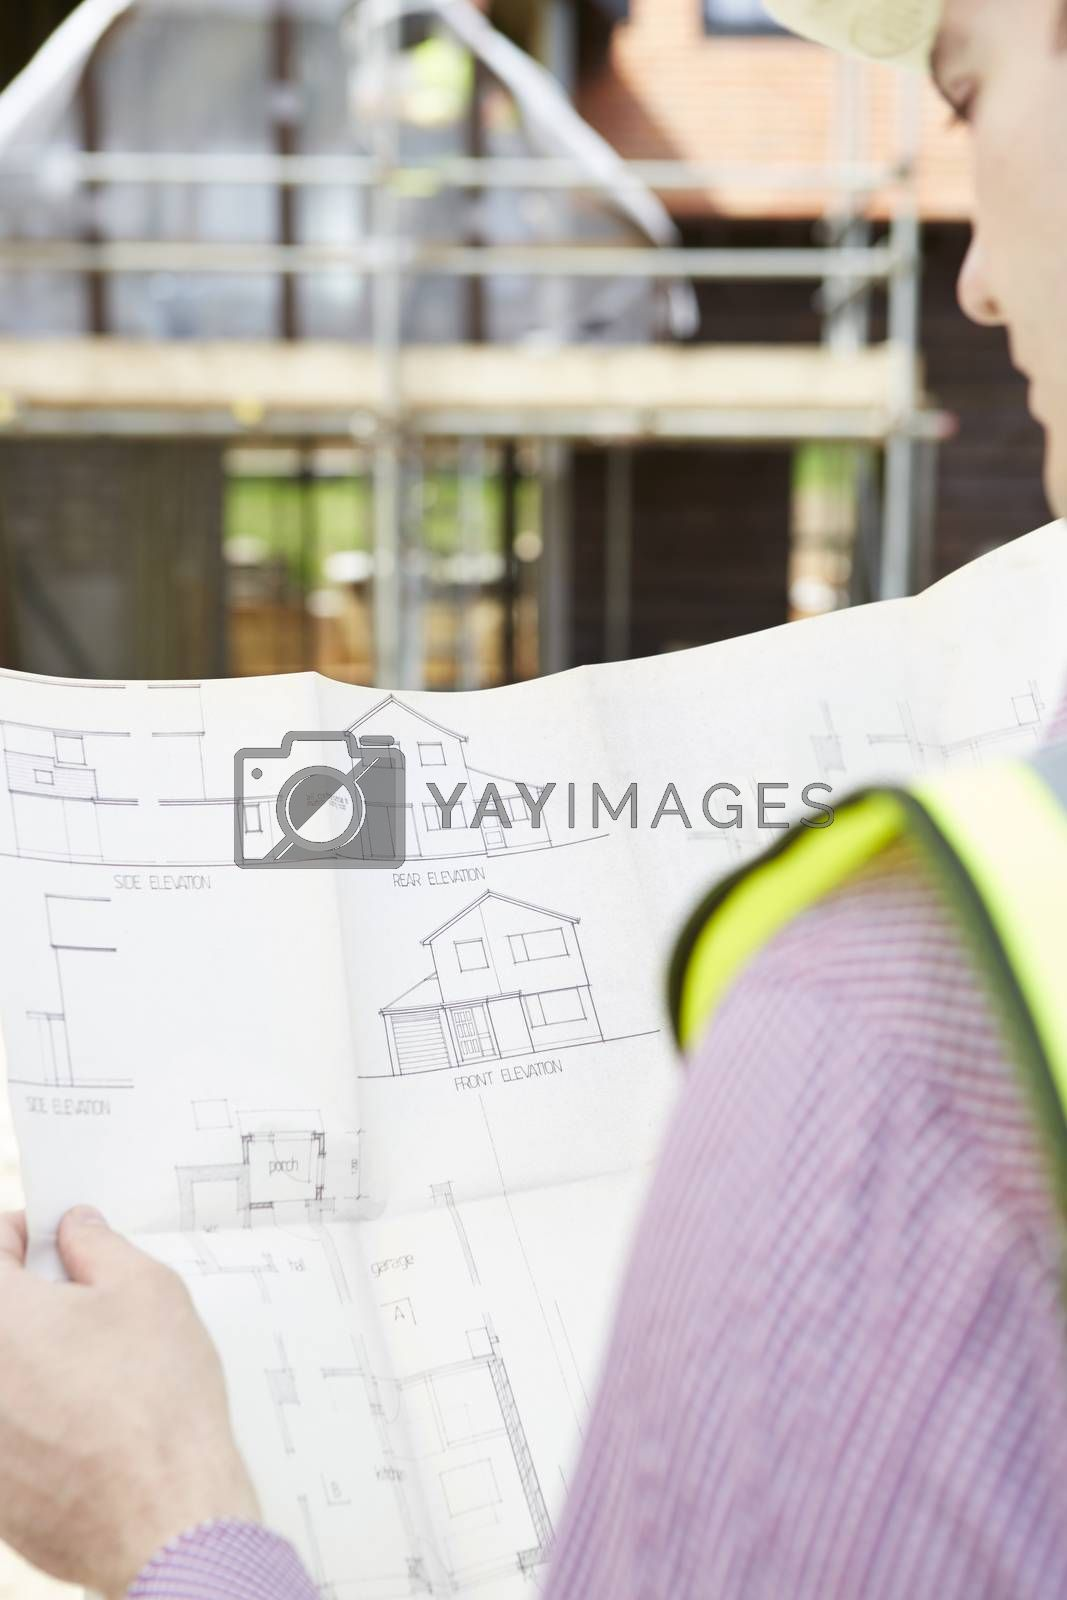 Architect On Building Site Looking At Plans For House